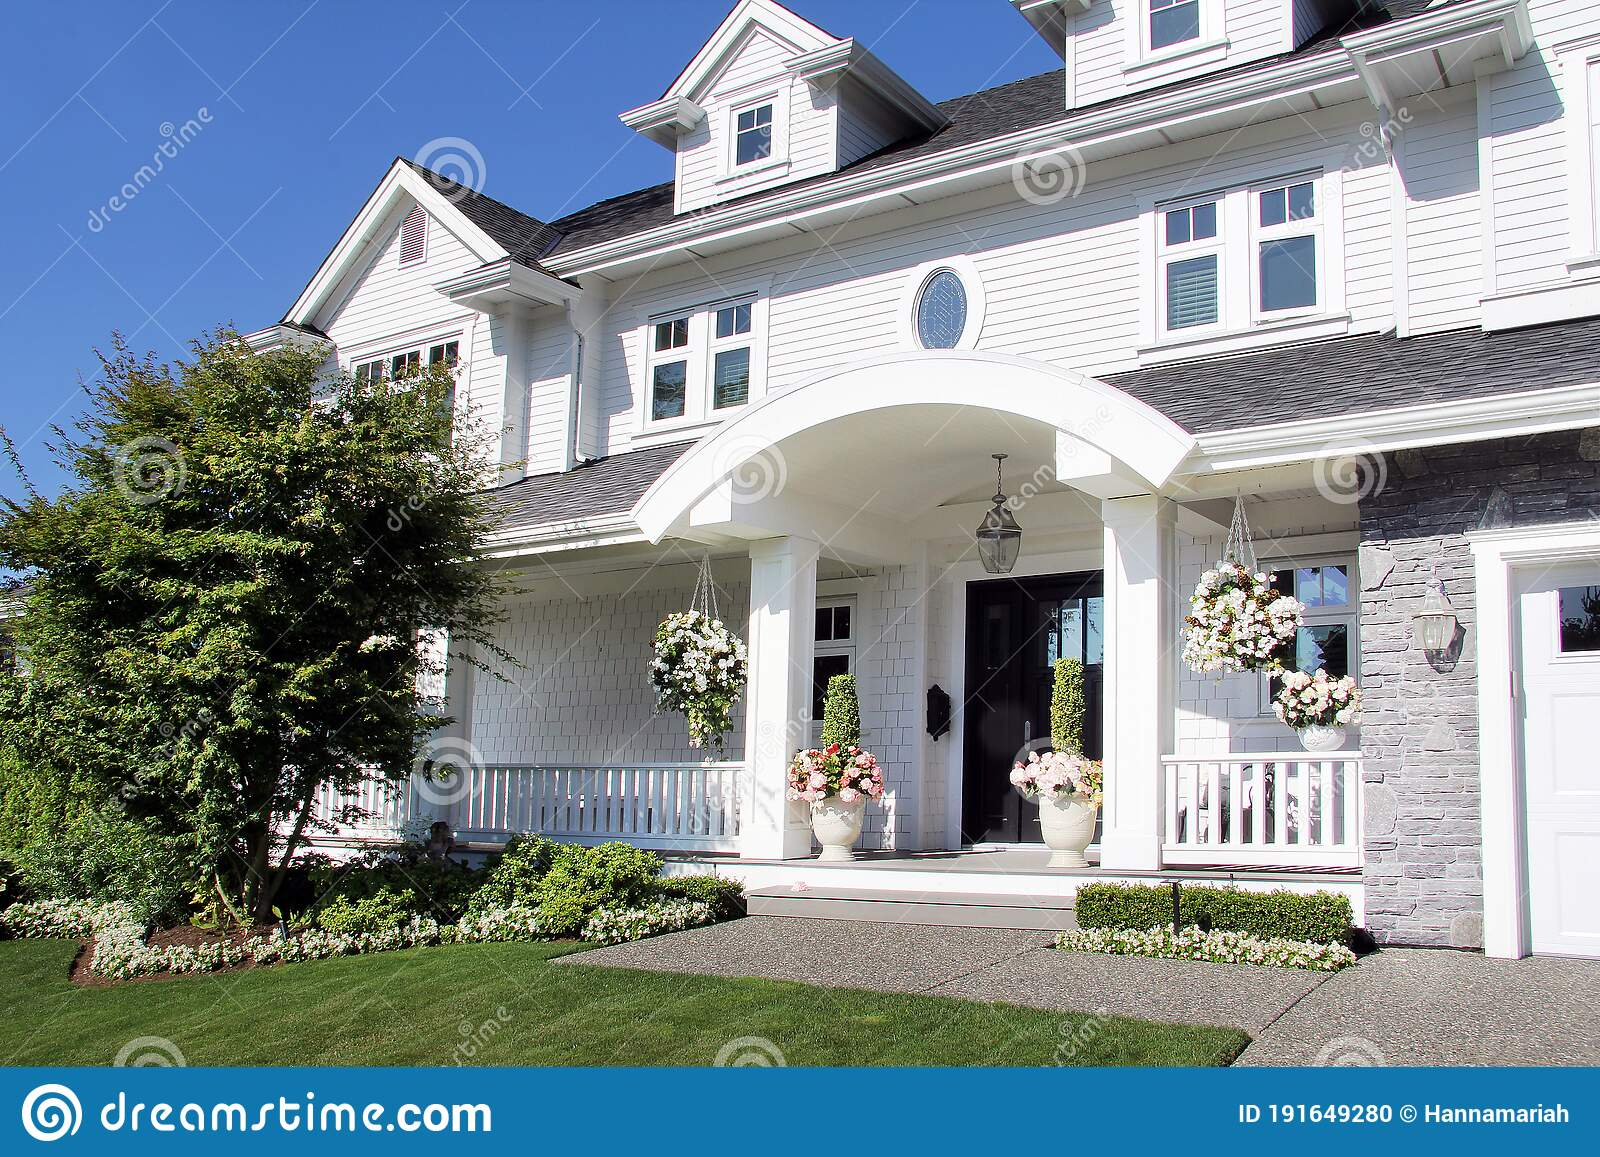 Beautiful New Luxury Home Exterior In Summer Stock Photo Image Of Planter Luxury 191649280